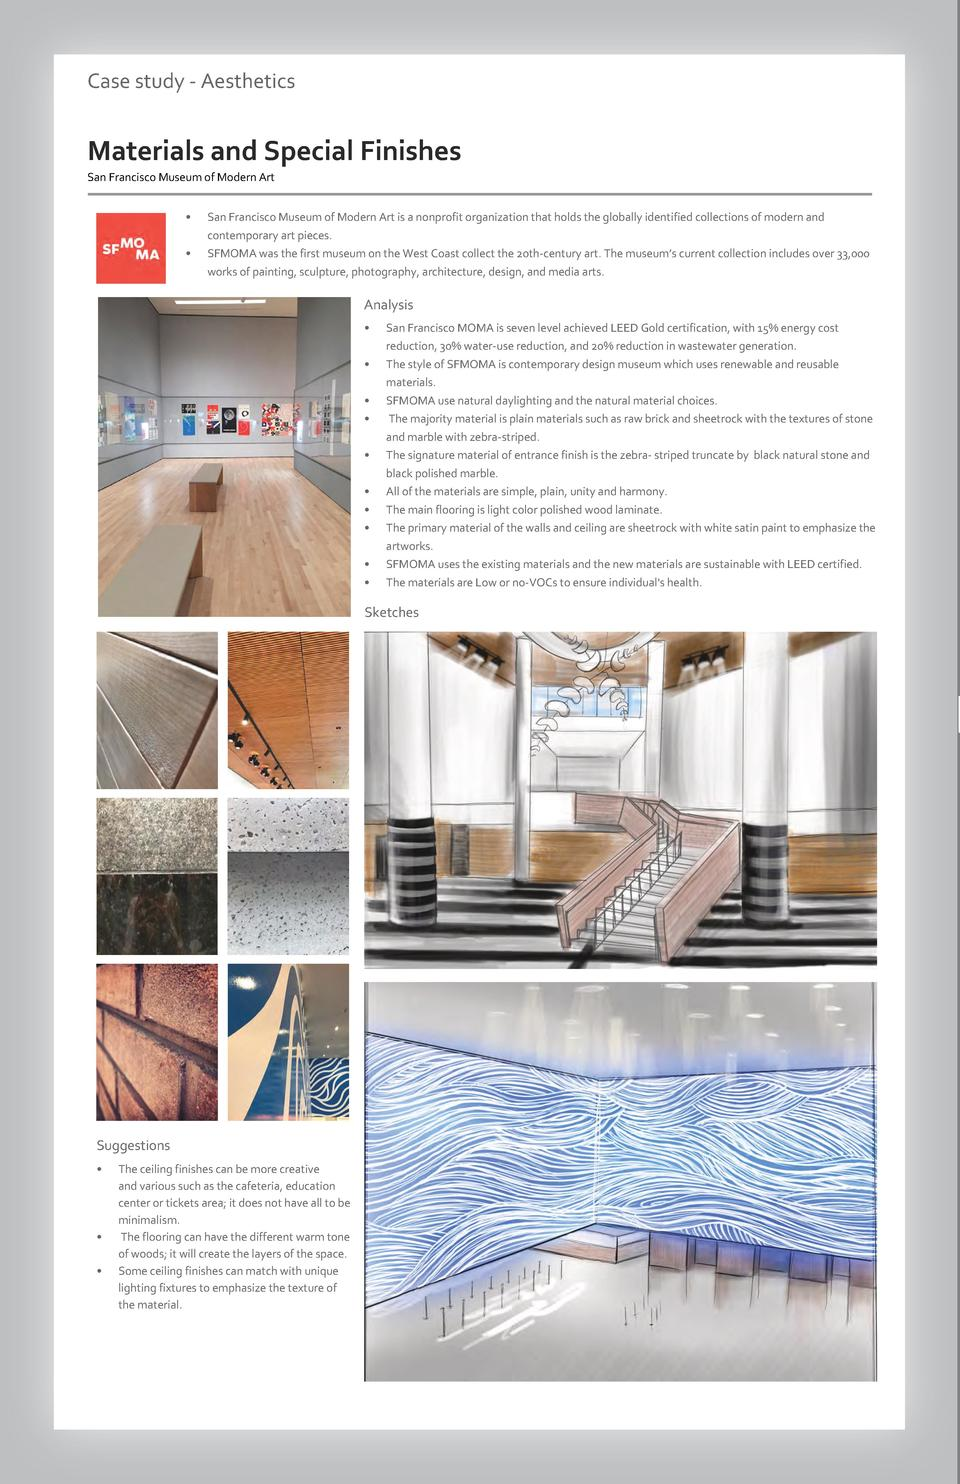 Case study - Aesthetics  Commercial Materials andSpace Special Wayfinding Finishes Westfield San Francisco Valley Museum F...